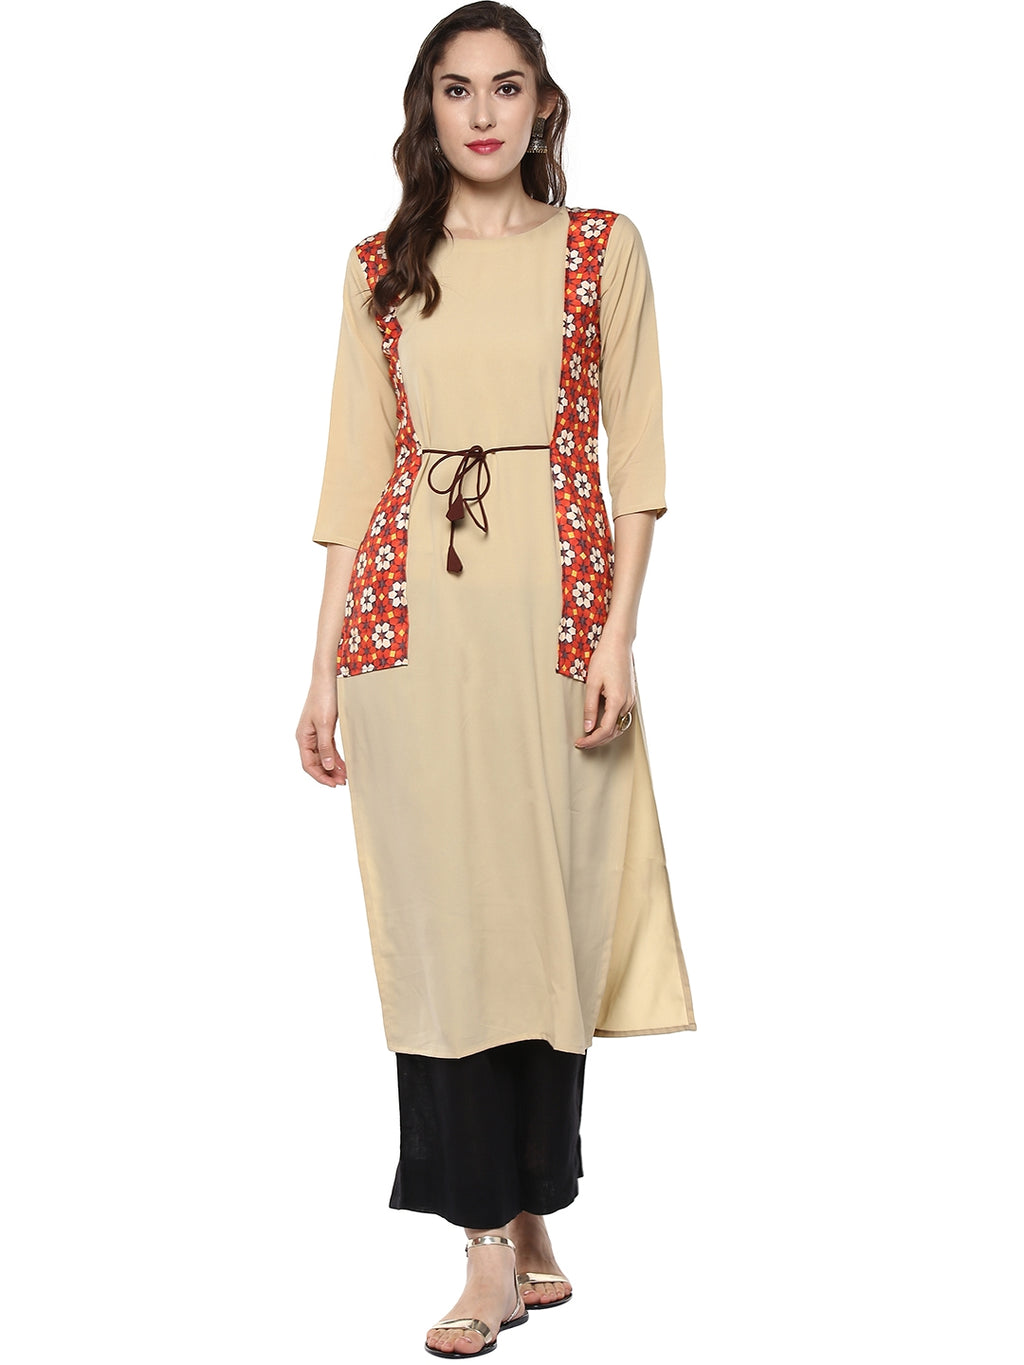 Beige Color Crepe Readymade Party Wear Kurtis ( Sizes-36,38,40,42,44) Janasya Catlog SJ-5466